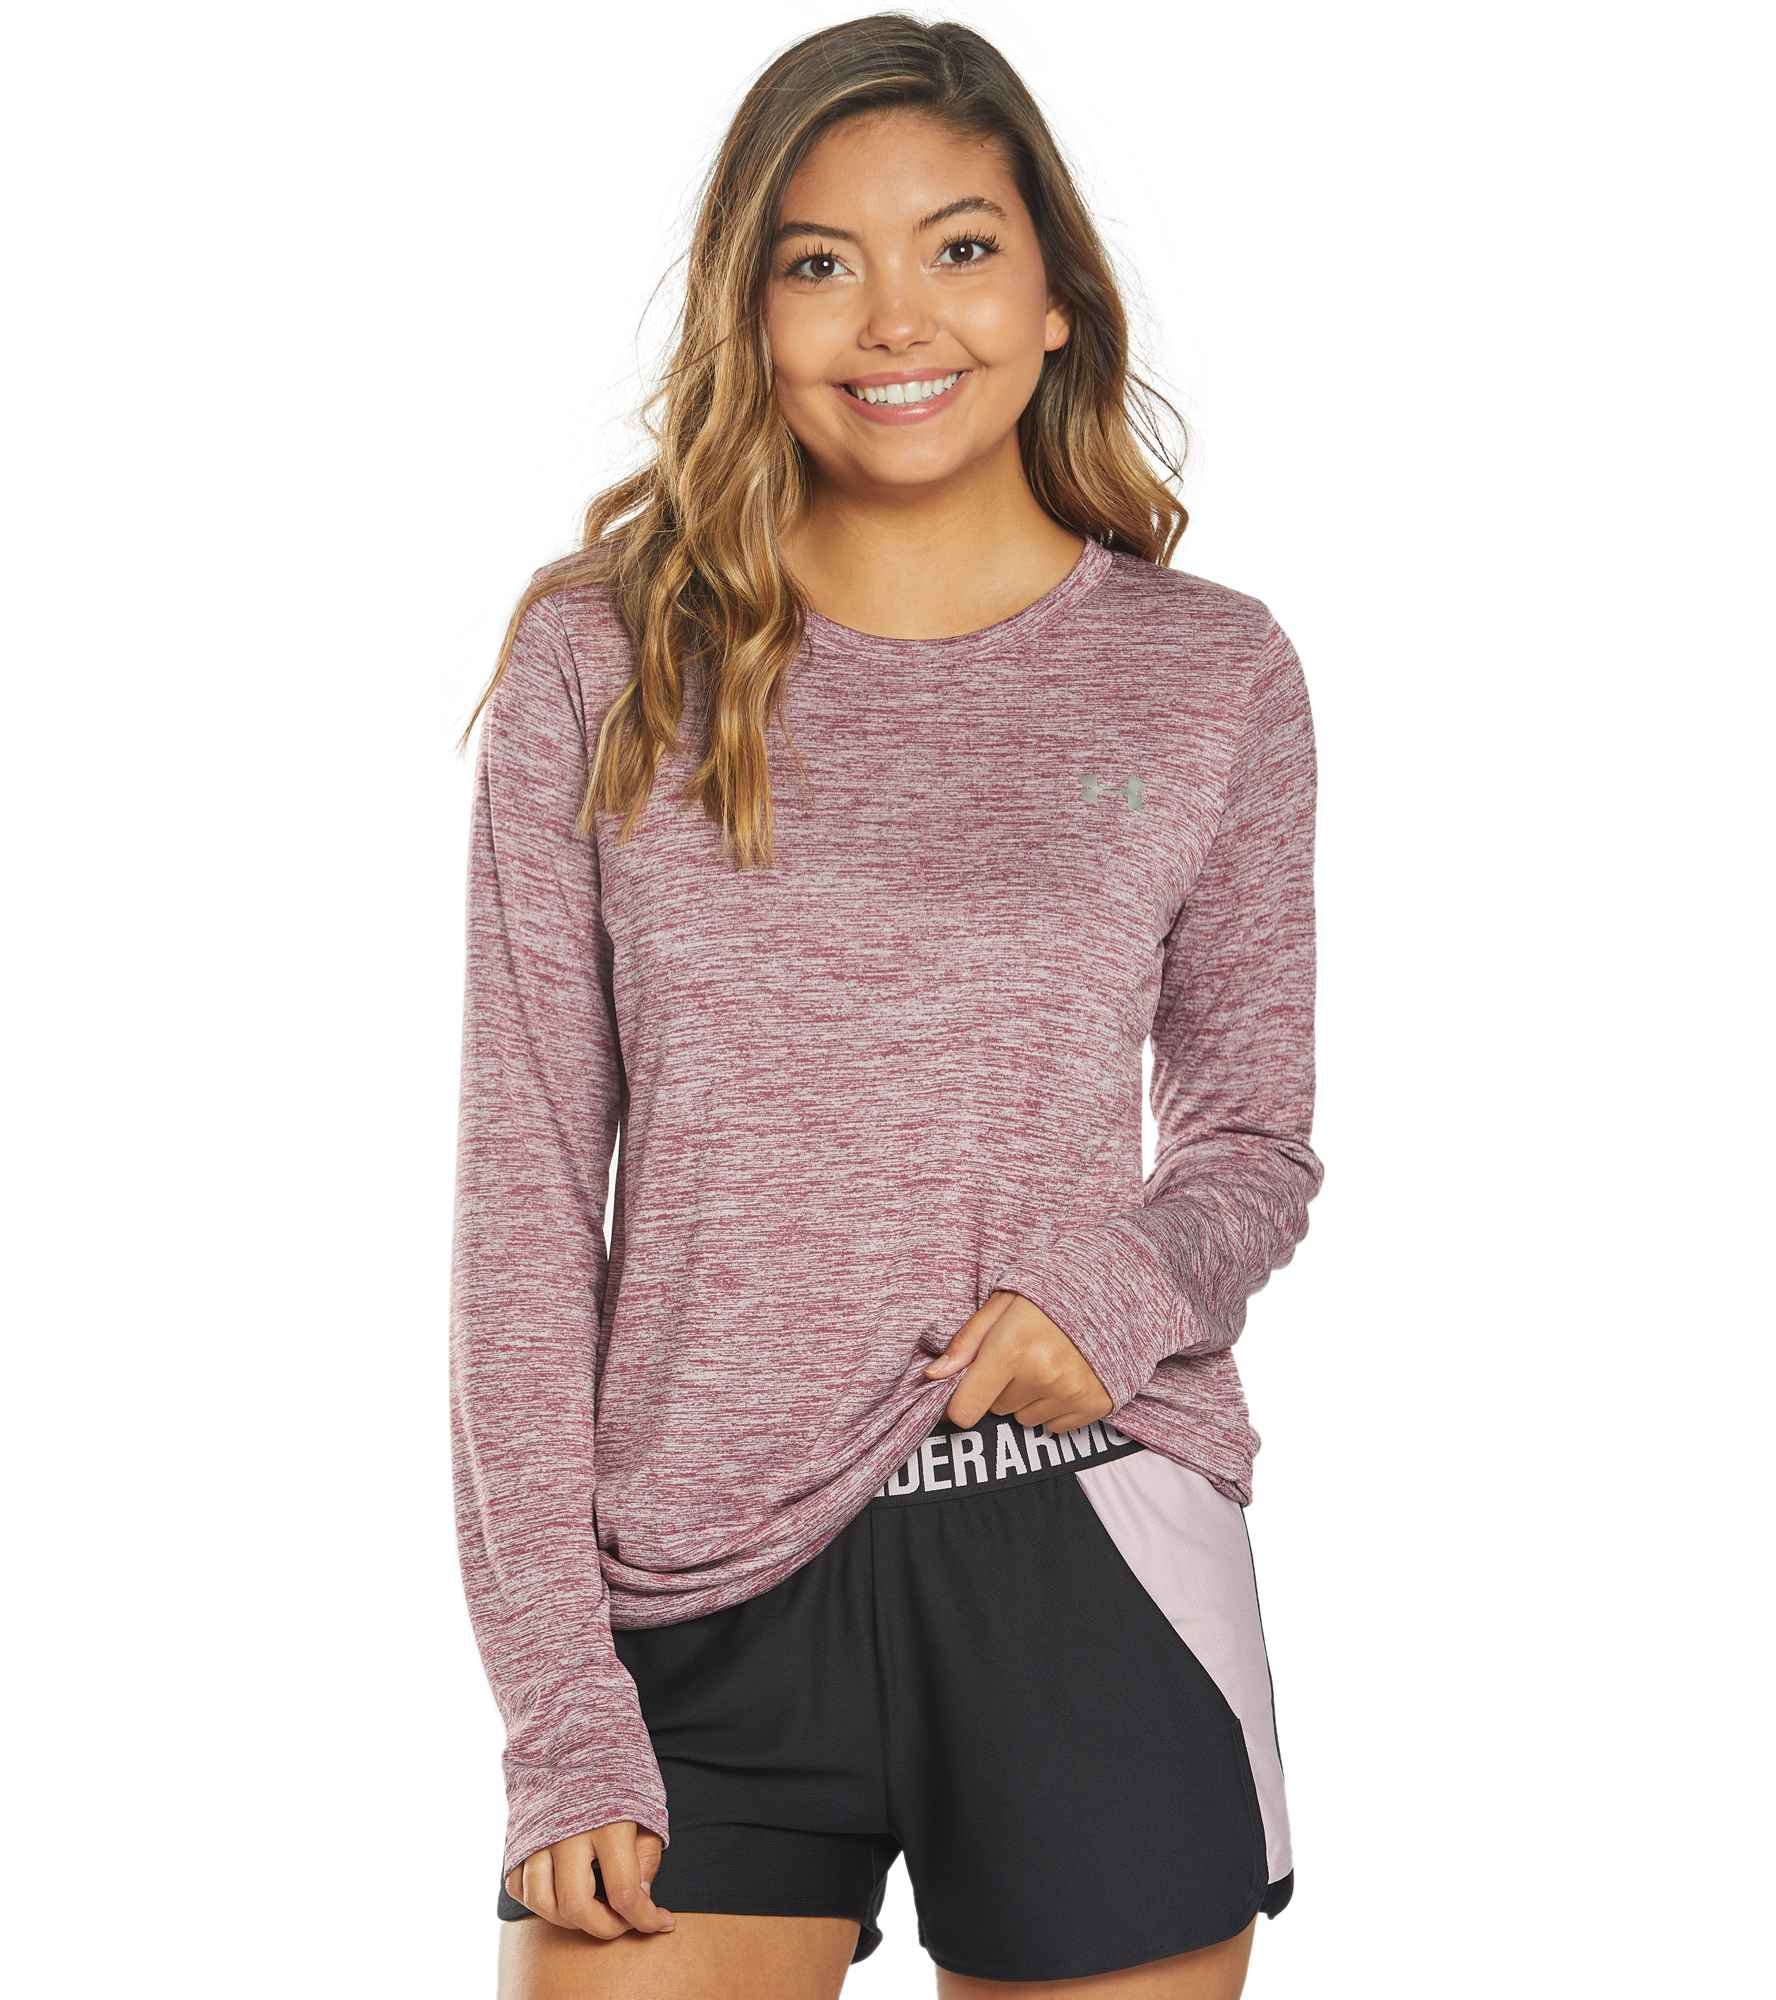 For days that can\\\'t decide between hot and cold, the Under Armour Women\\\'s Tech LS Crew Twist top does the job. Its soft, comfortable fabric keeps you feeling cool, dry and light no matter how much you sweat. Stretchy construction provides you with optimal range of motion. Fabric & Care Machine wash cold and tumble dry low. Do not use bleach, fabric softener, dryer sheets or iron. Updated UA Tech(TM) fabric has a softer, more natural feel for incredible all-day comfort. Signature Moisture Transpo